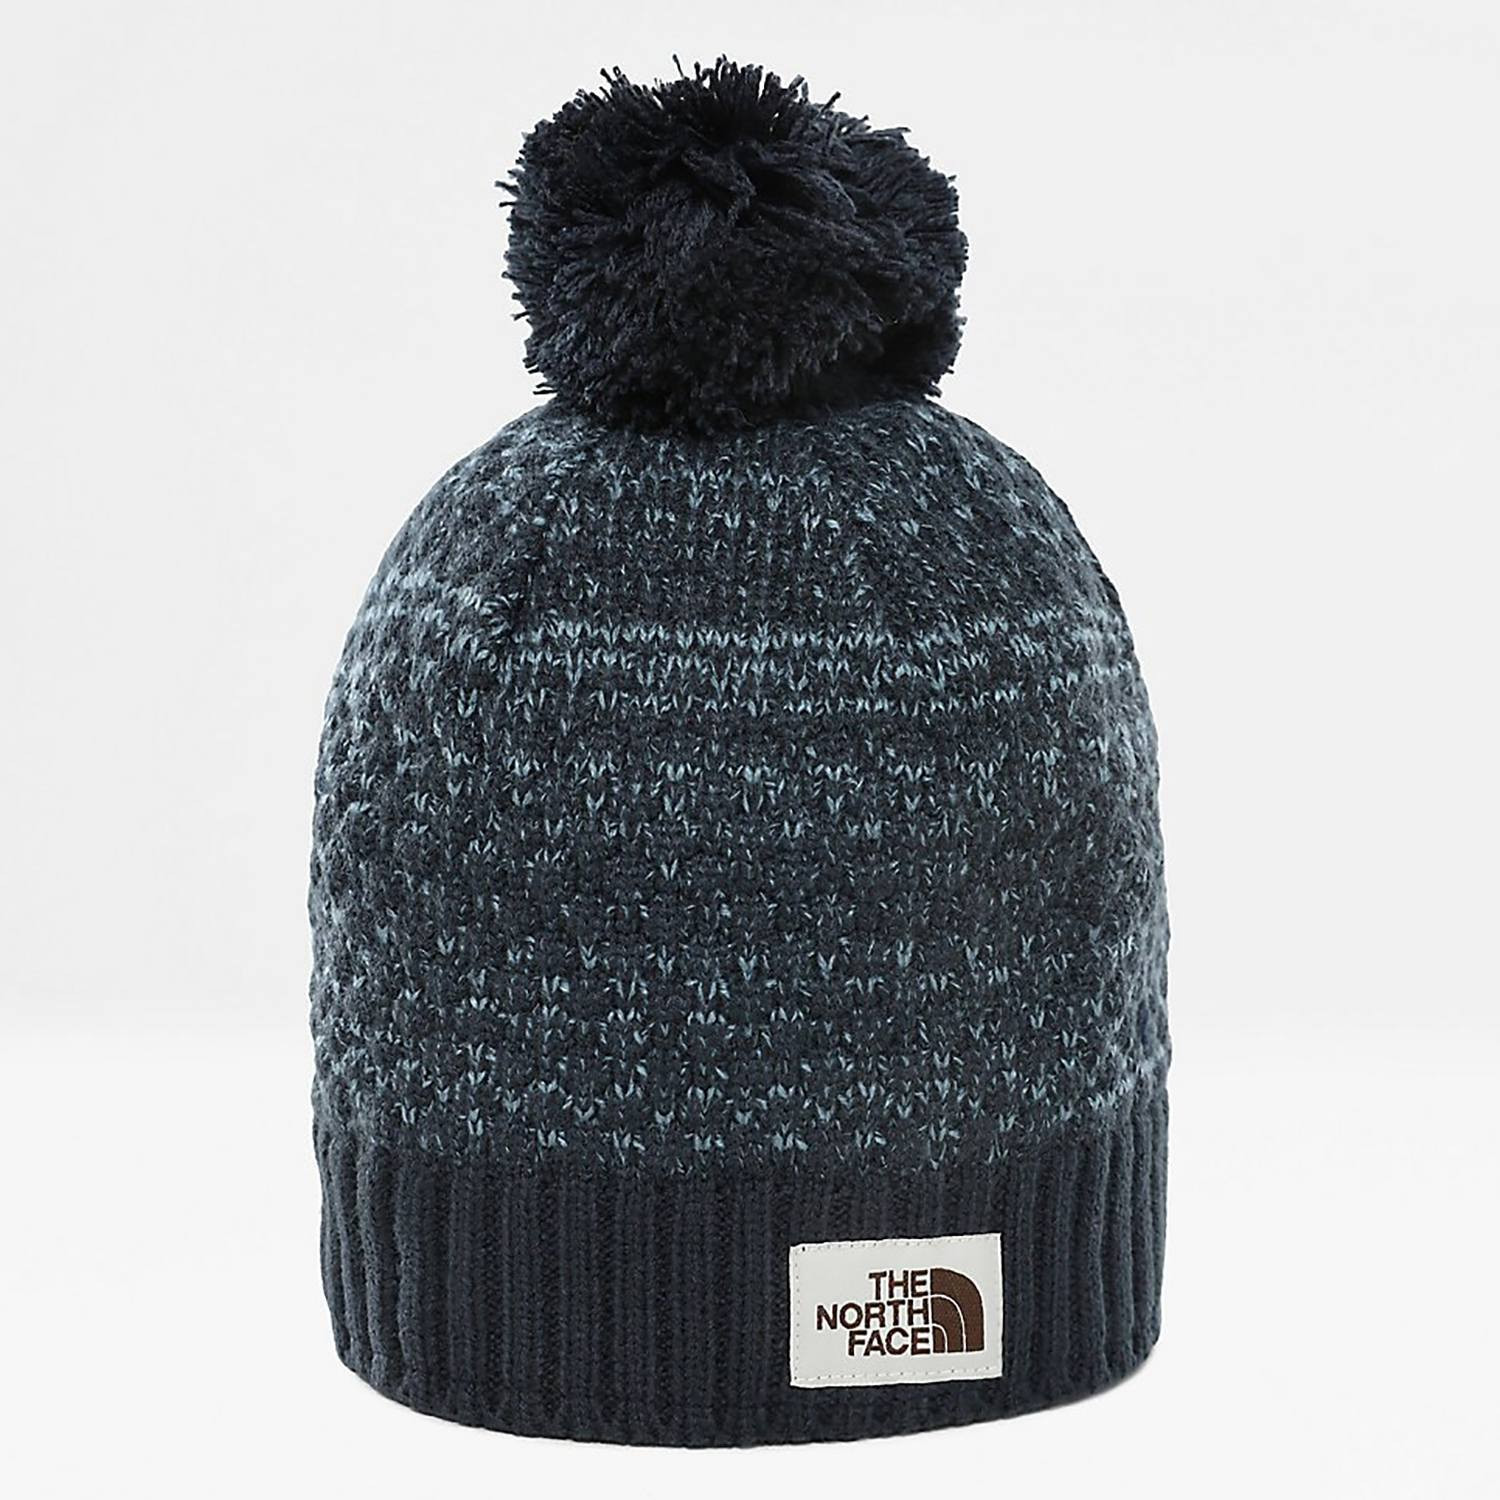 THE NORTH FACE ANTLERS BEANIE (9000036622_23306)